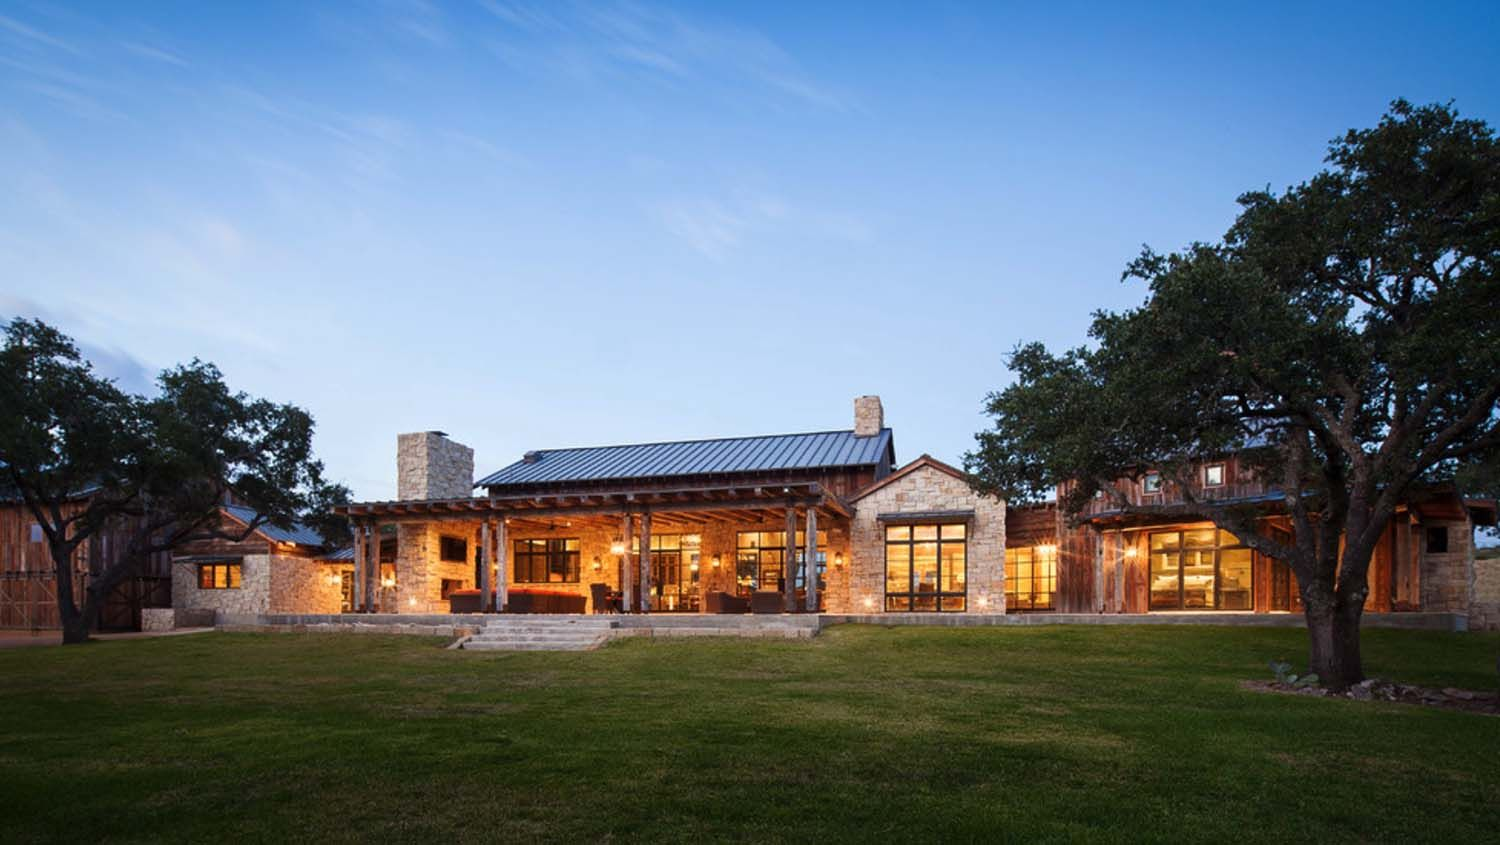 Modern Rustic Barn Style Retreat In Texas Hill Country Ranch